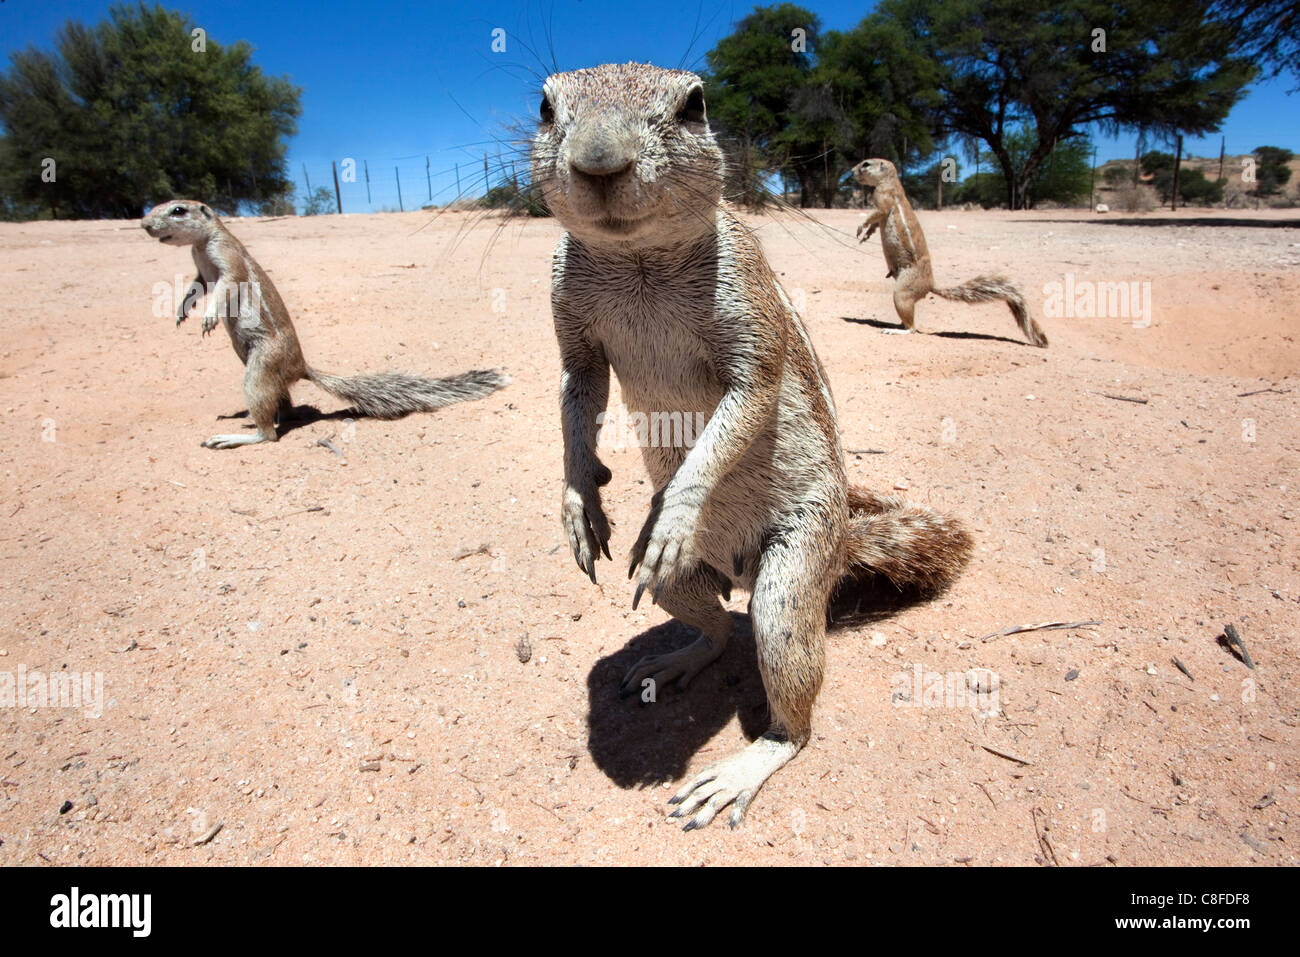 Ground squirrels (Xerus inauris, Kgalagadi Transfrontier Park, Northern Cape, South Africa - Stock Image